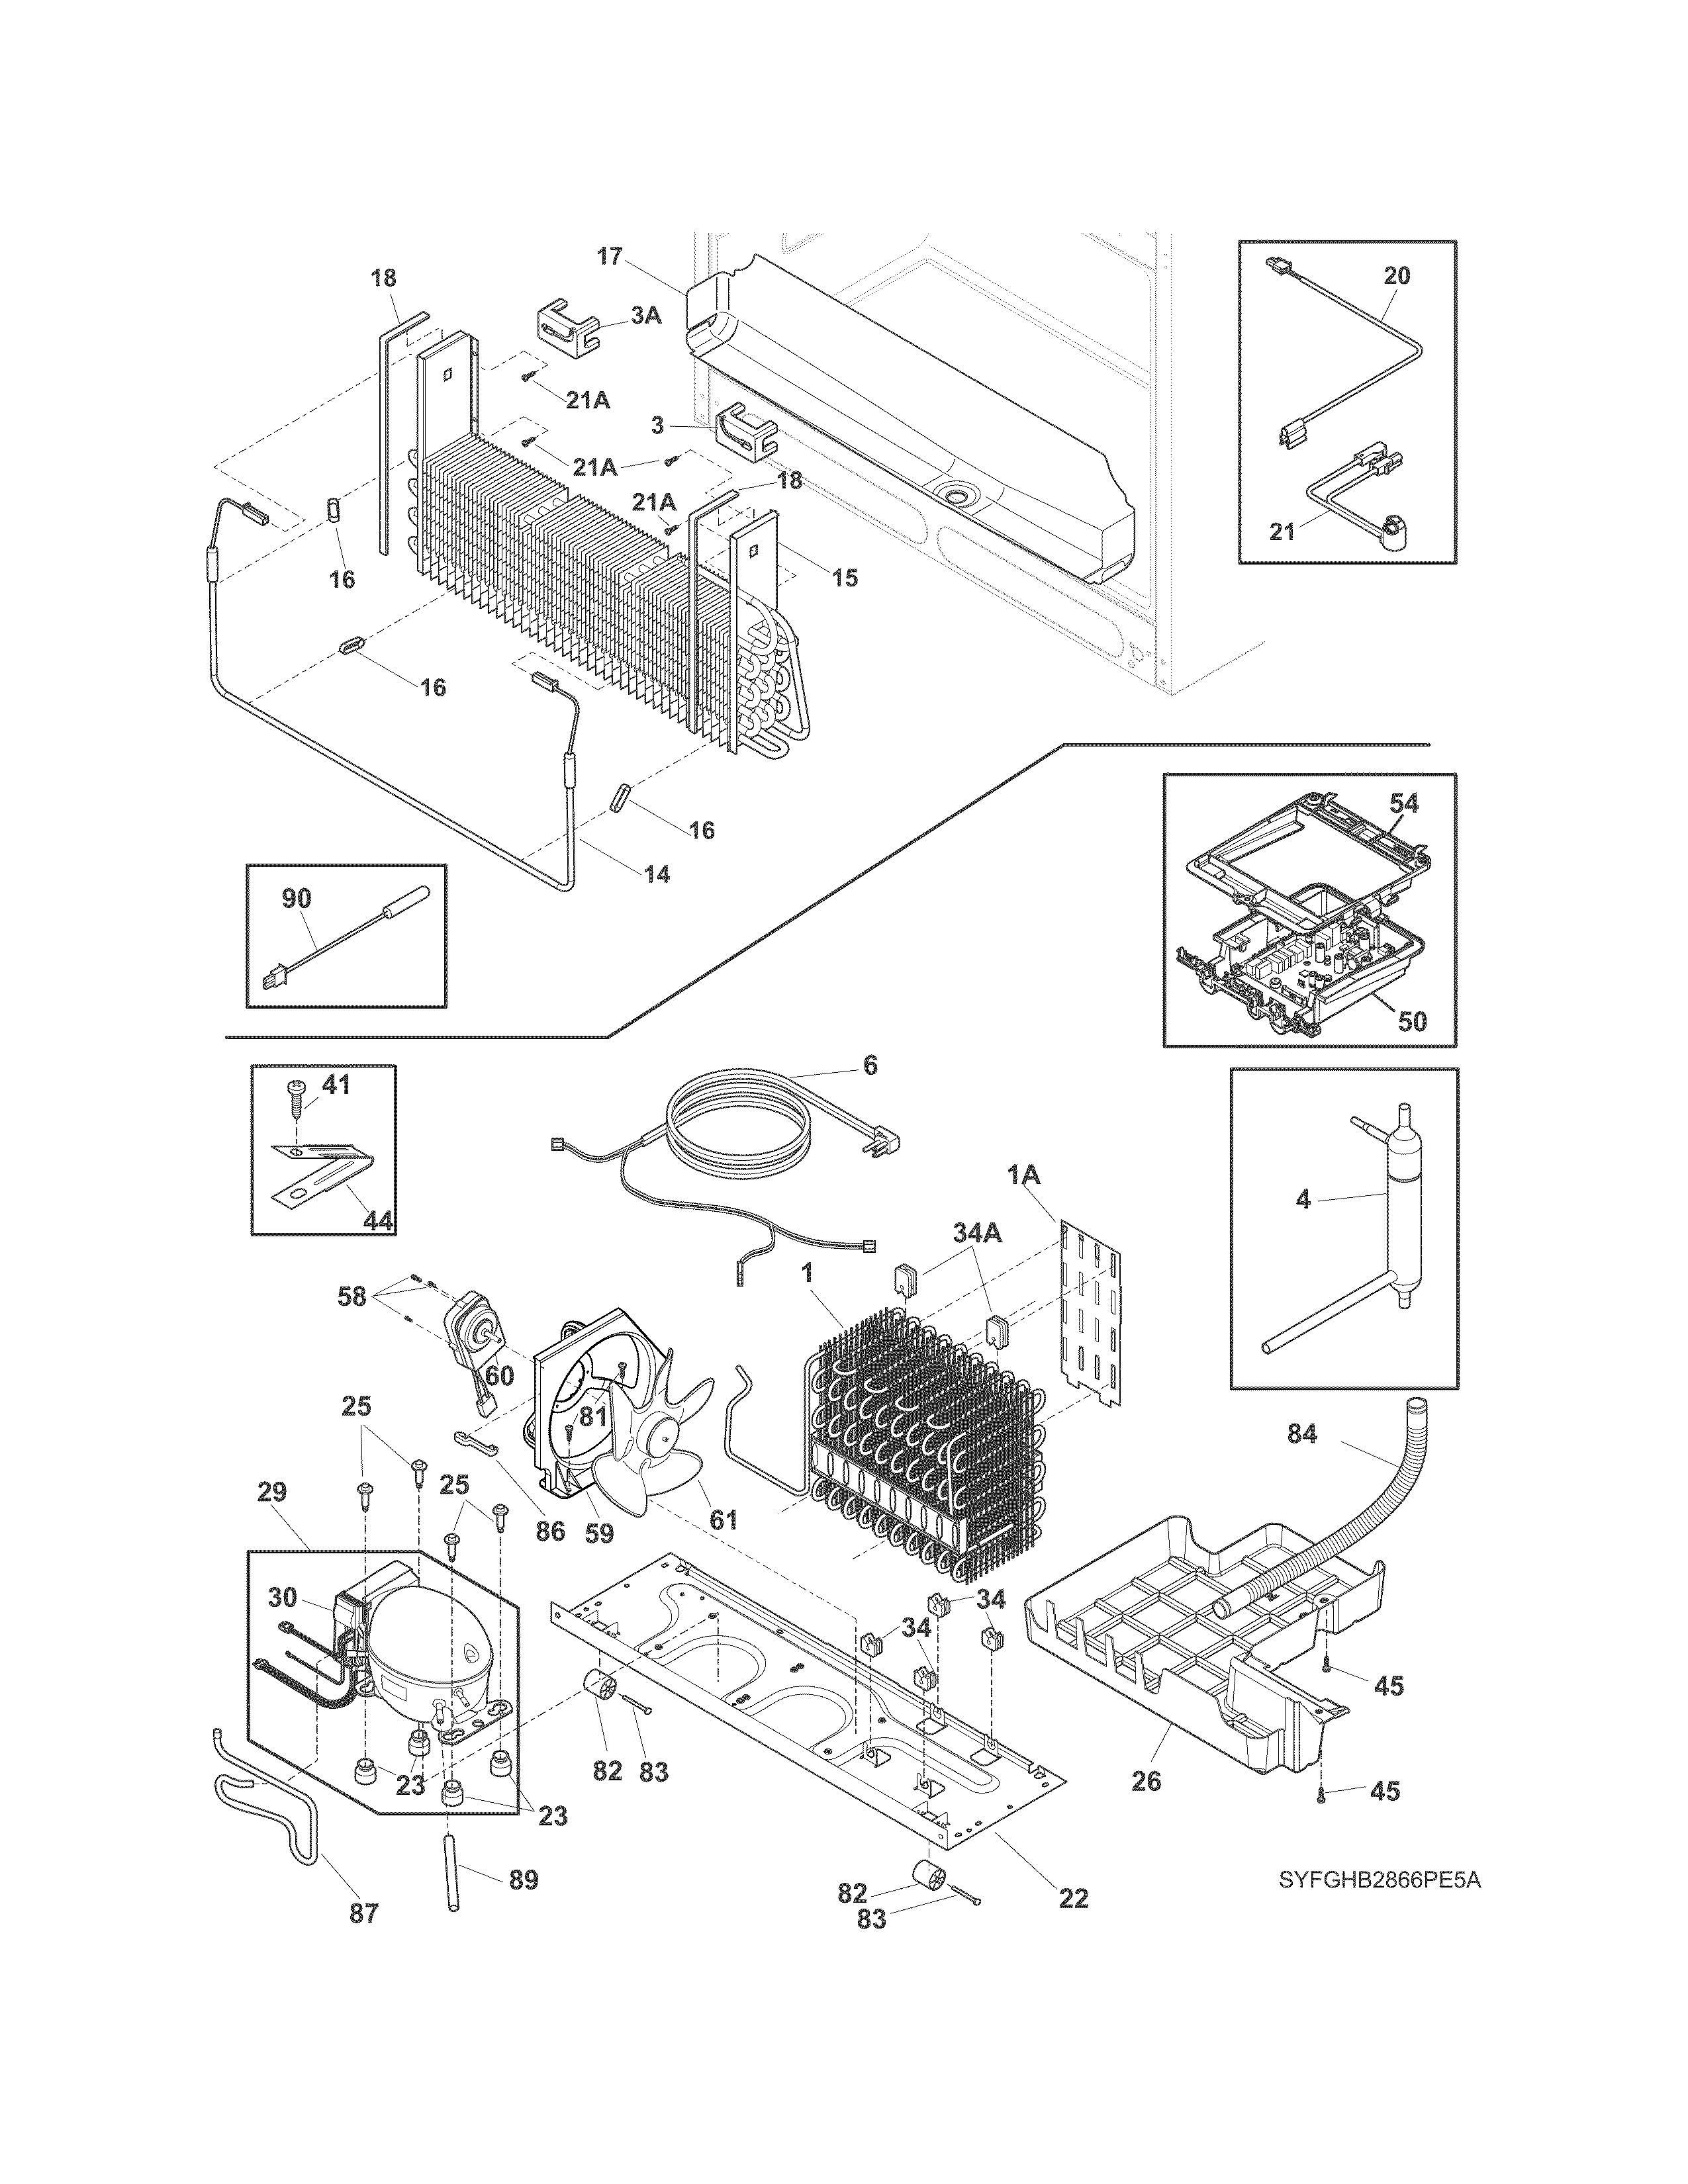 Frigidaire FGHB2866PF9A cooling system diagram